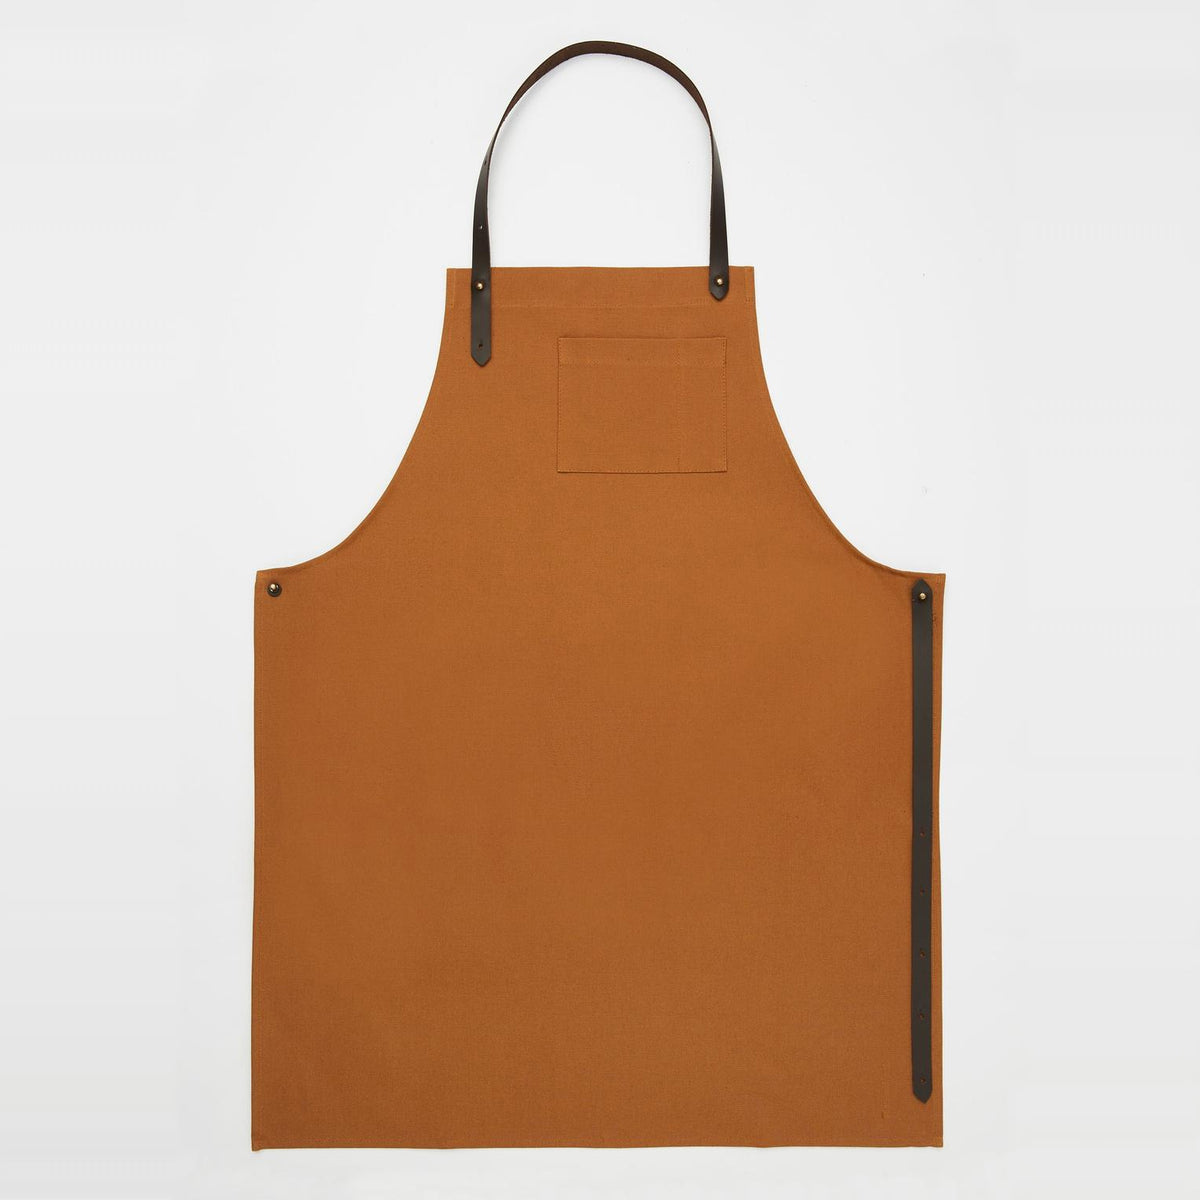 Handmade Unisex Camel Canvas & Leather Apron - Sold by Chic & Basta